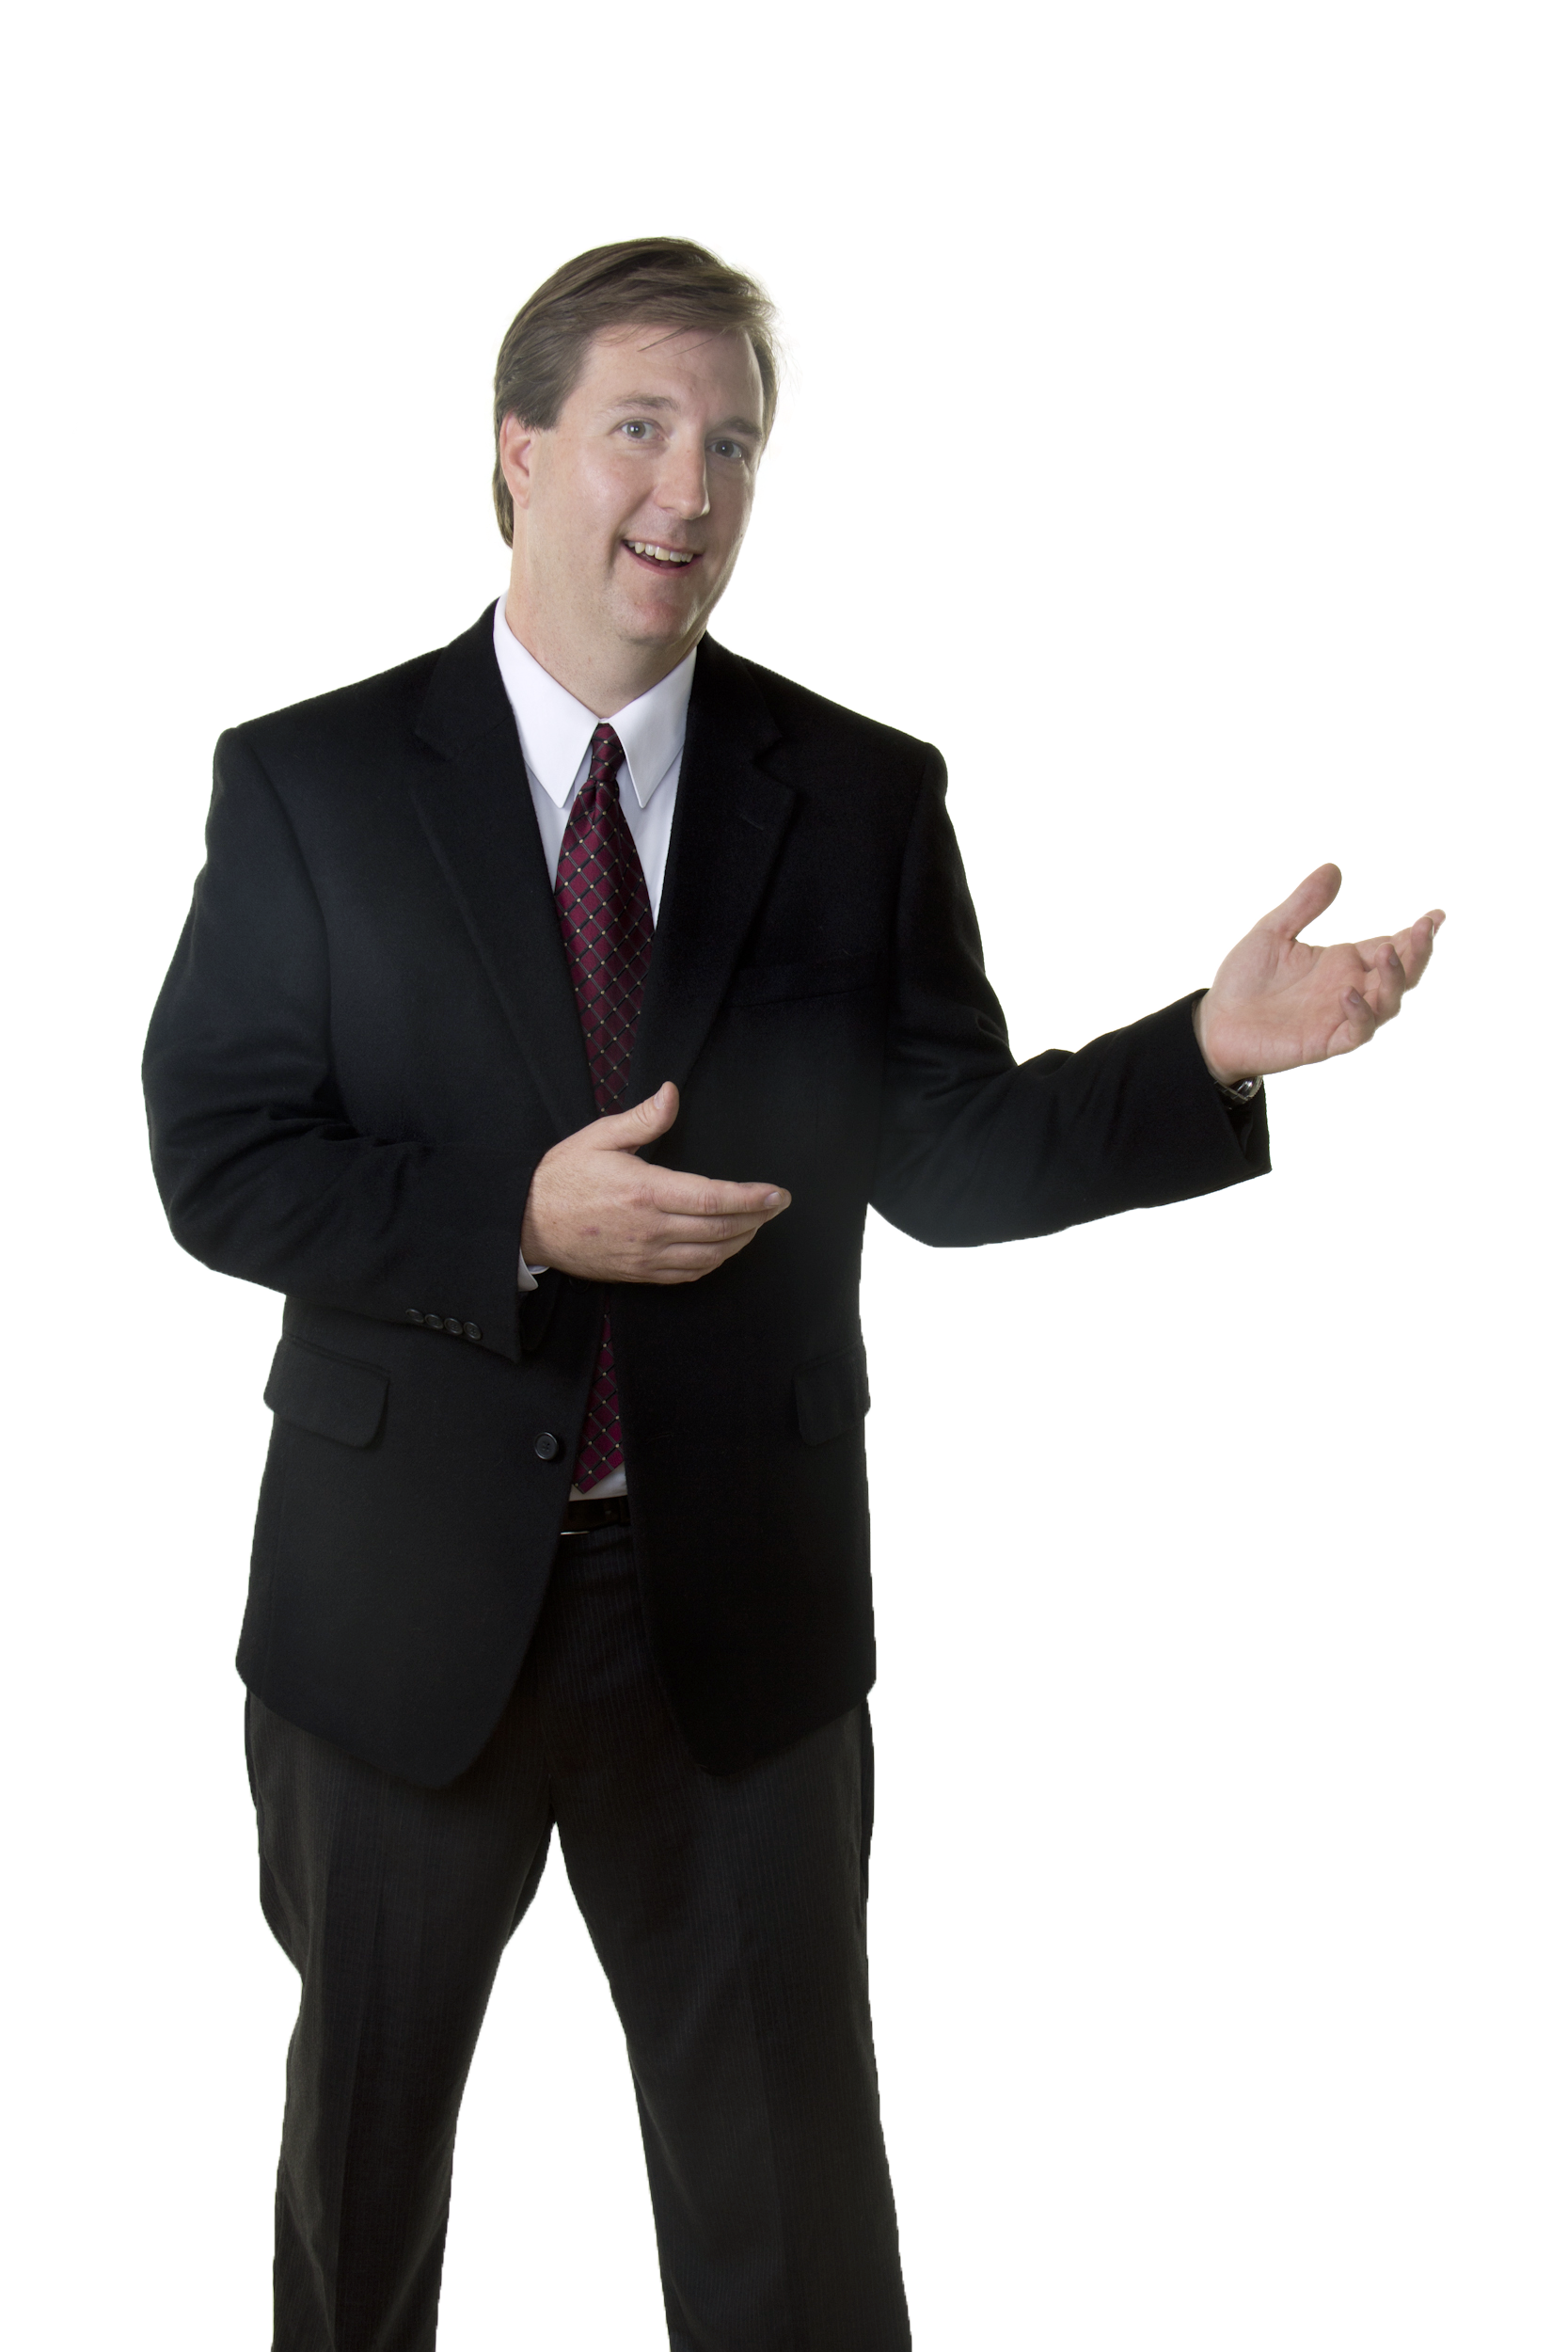 Professional clipart male professional. Free photo businessman one